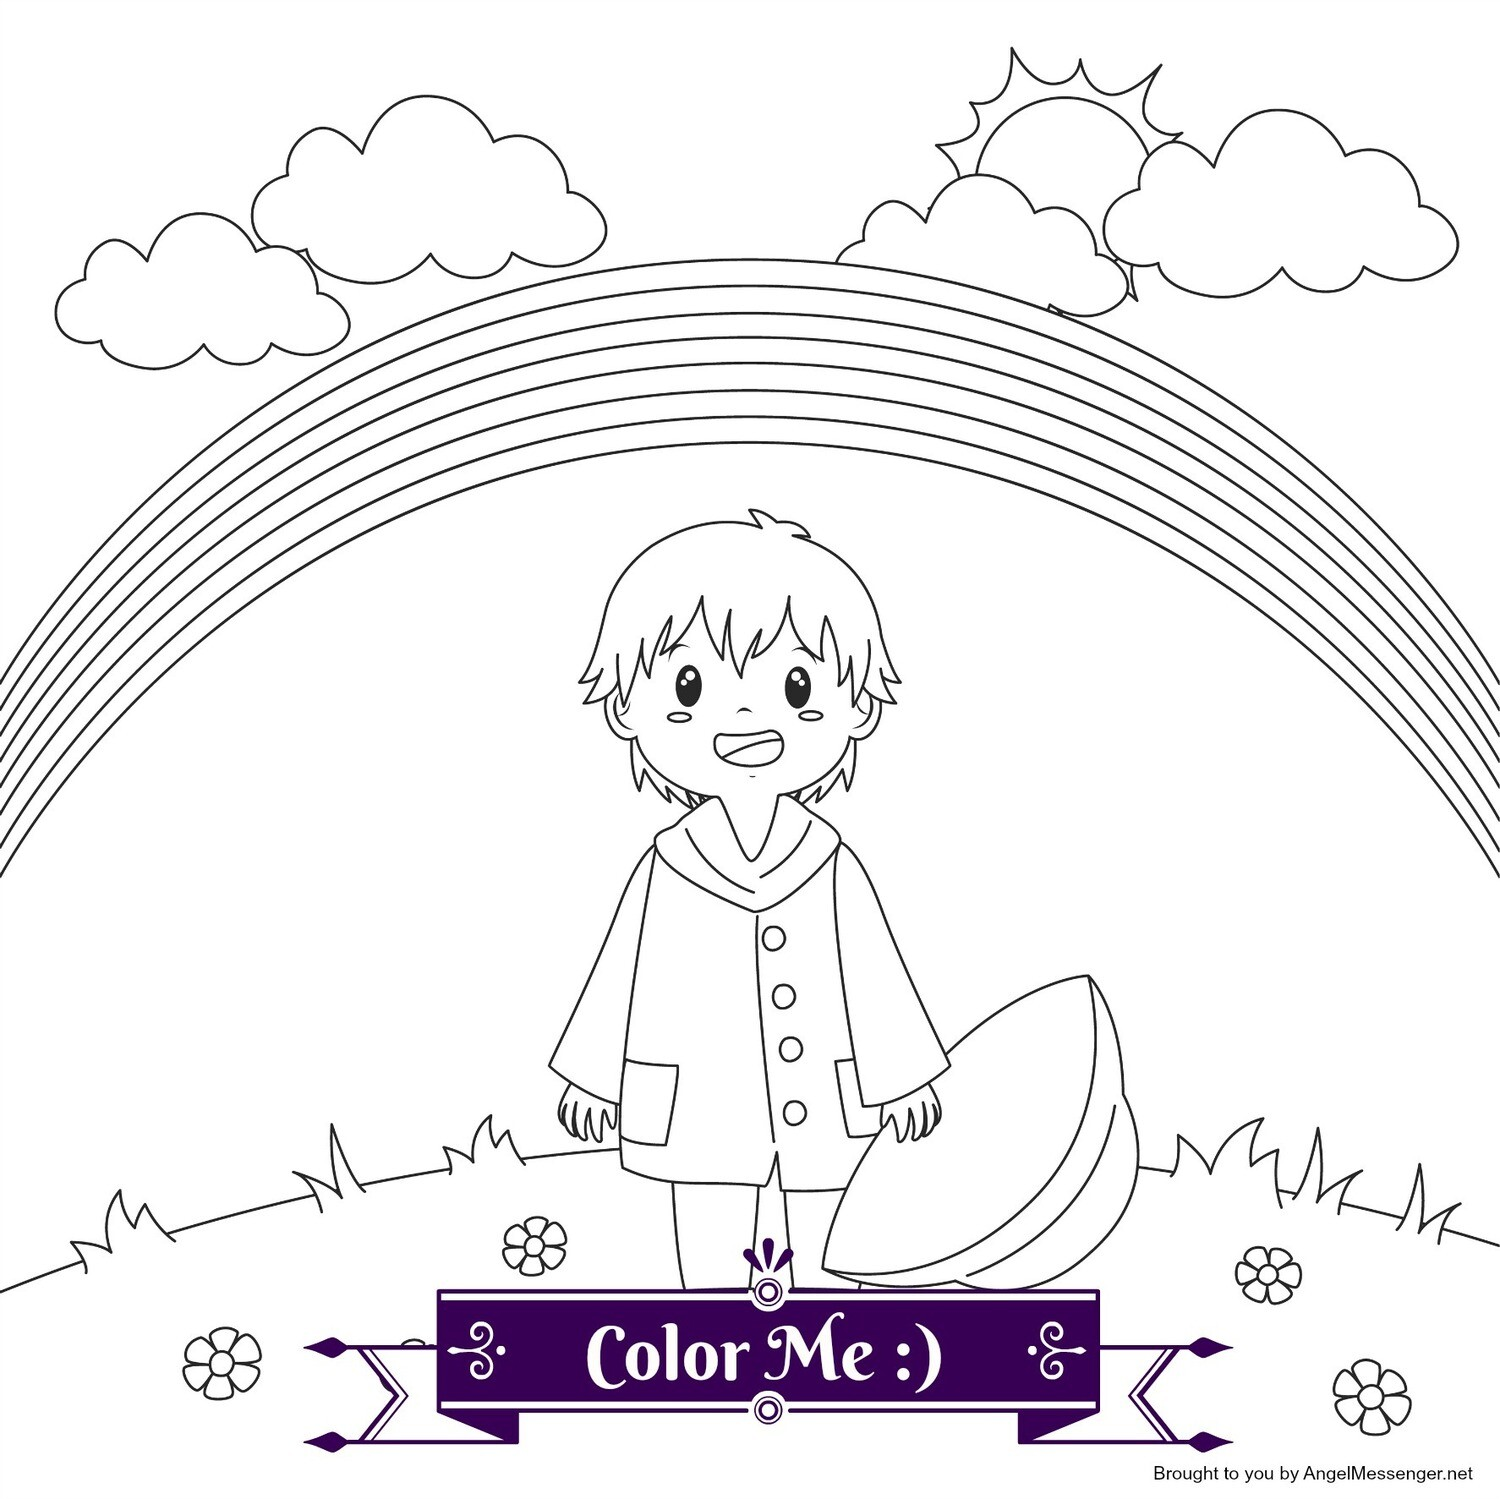 Child & Rainbow Coloring Page